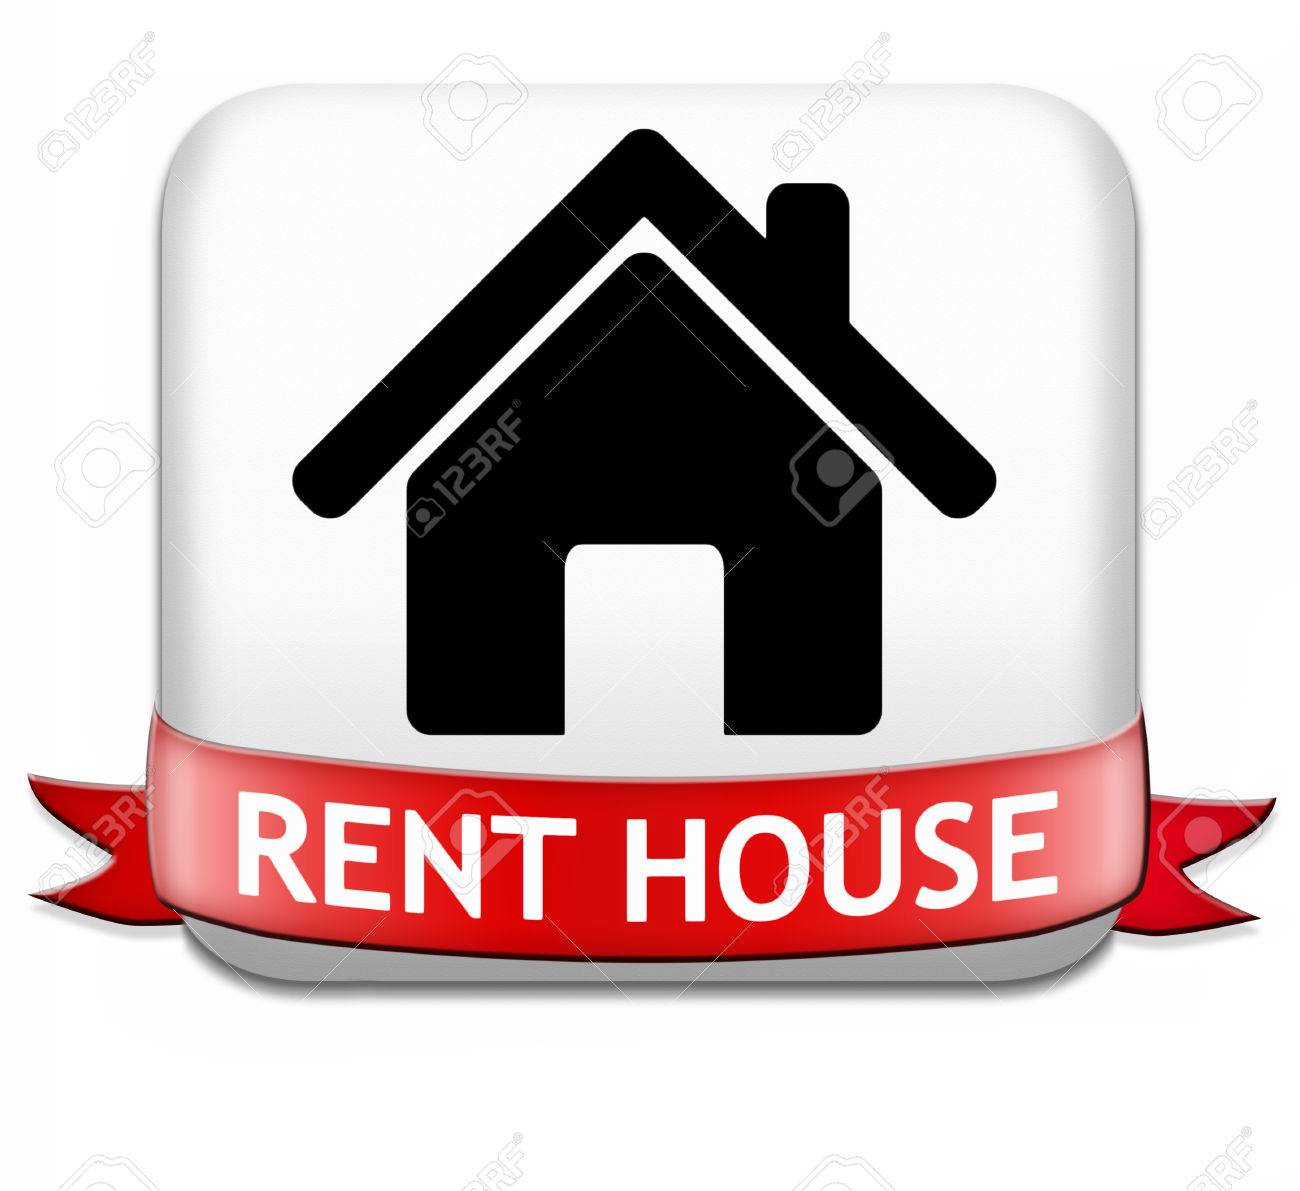 House For Rent Sign Renting A Flat Room Apartment Or Other Stock